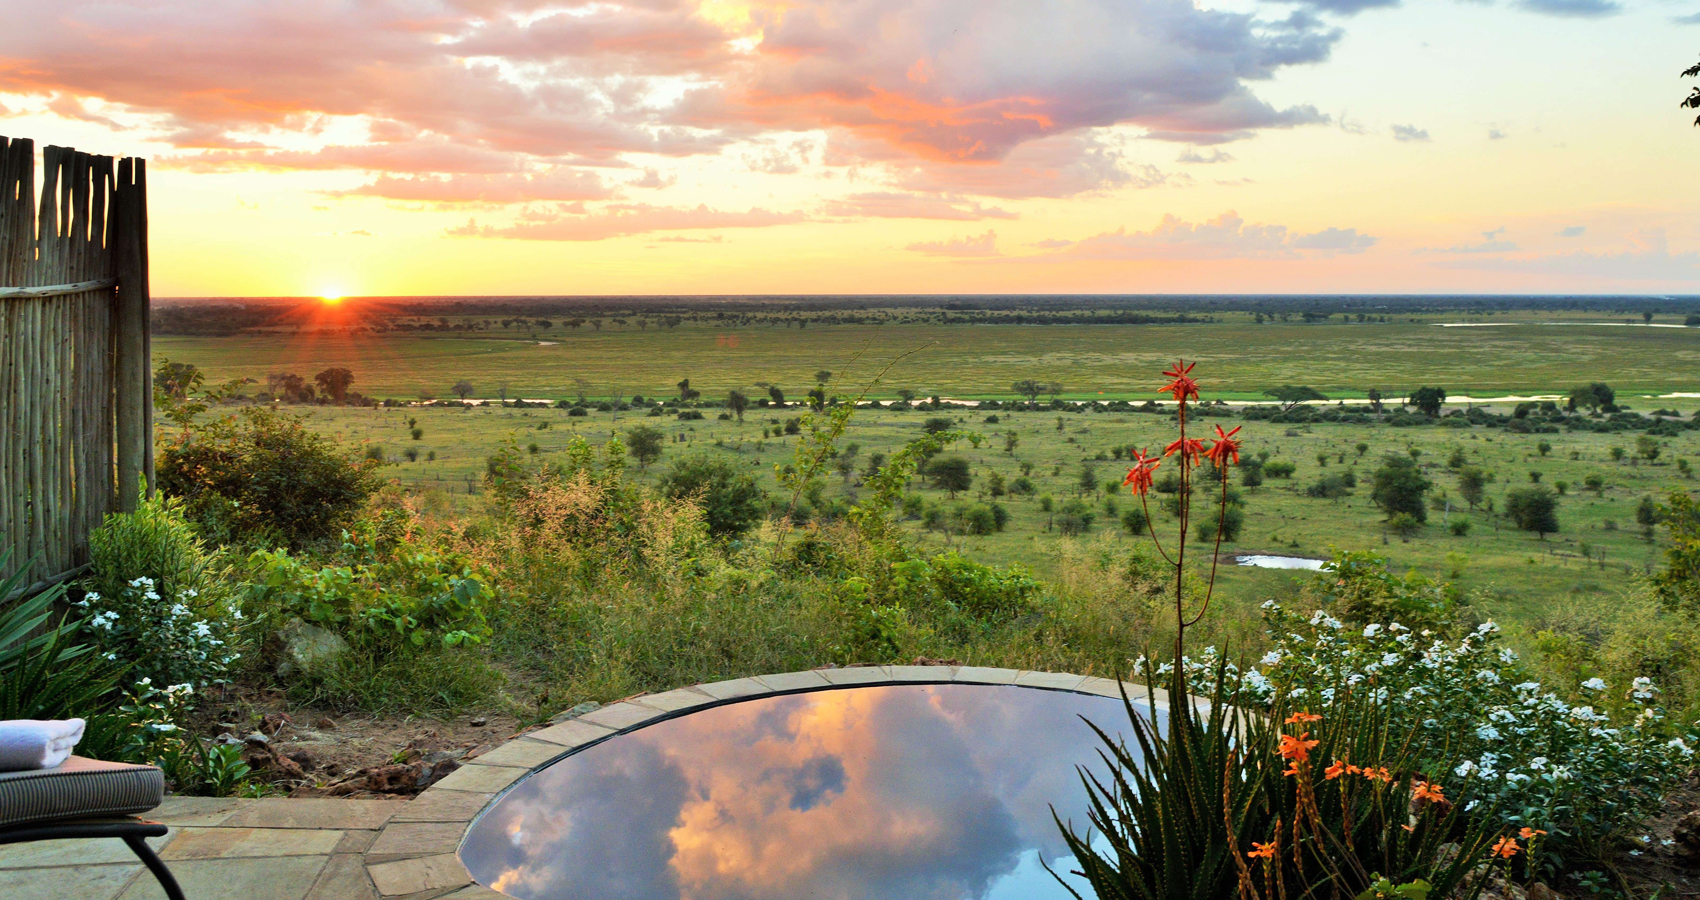 Ngoma_Safari_Lodge-joins-Machaba_Safaris